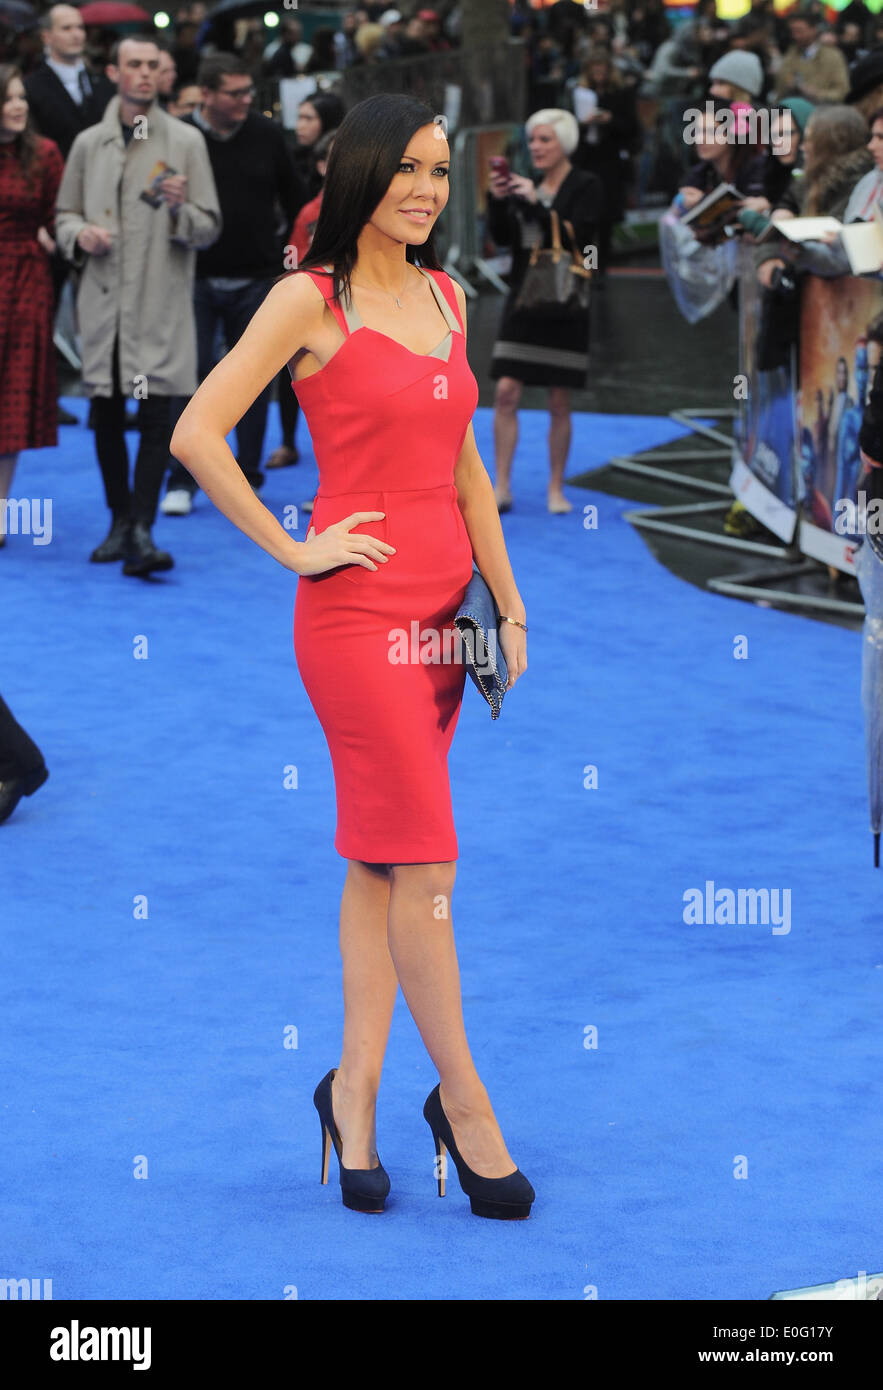 London, UK, UK. 12th May, 2014. Linzi Stoppard arrives for the UK Premiere of 'X-Men: Days Of Future Past' at Odeon Leicester Square. Credit:  Ferdaus Shamim/ZUMA Wire/ZUMAPRESS.com/Alamy Live News - Stock Image